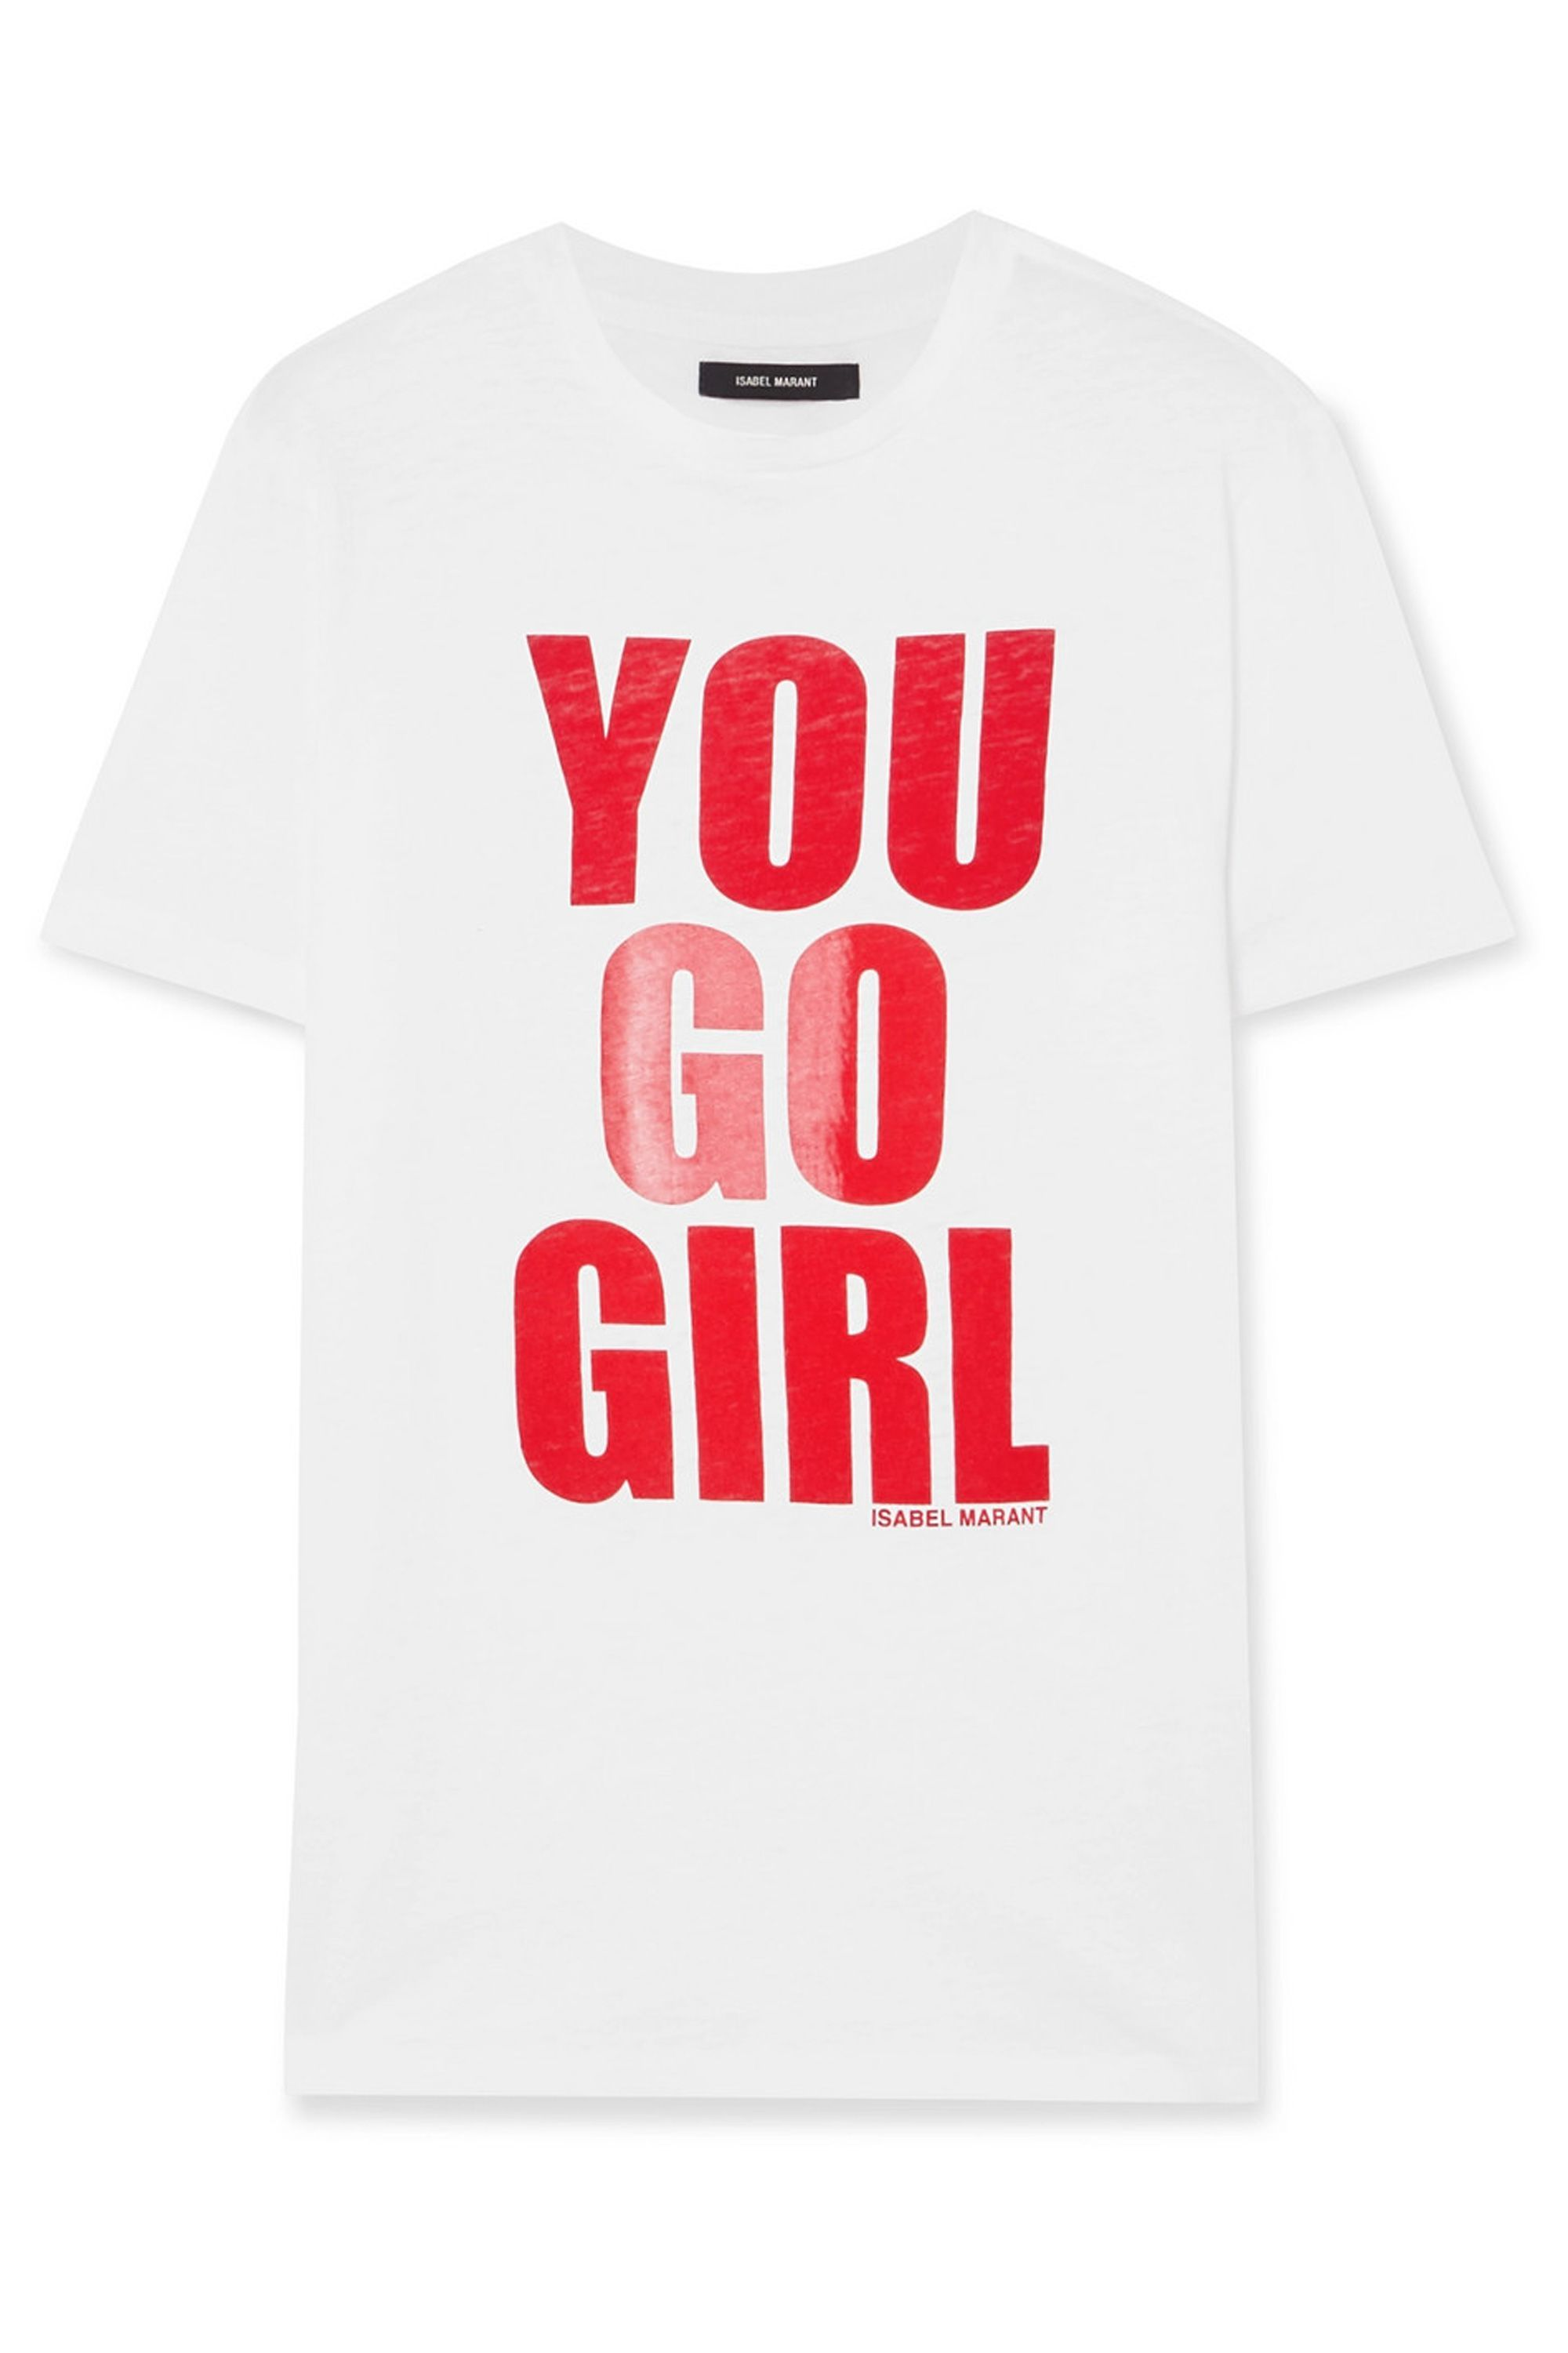 International Women's Day printed cotton-jersey T-shirt Isabel Marant net-a-porter.com $140.00 SHOP NOW She's your biggest supporter, and you, hers. This shirt supports International Women's Day, with proceeds going to Women for Women International , a non-profit that supports marginalized women in countries affected by conflict and war.